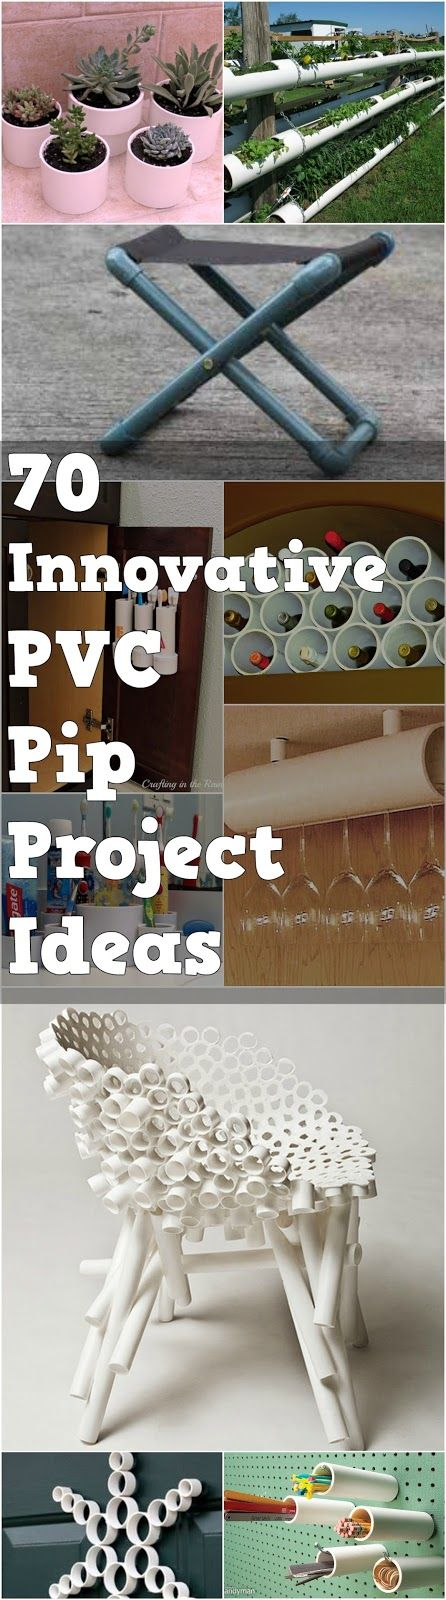 17 best ideas about pvc pipe crafts on pinterest pvc for Pvc pipe craft projects